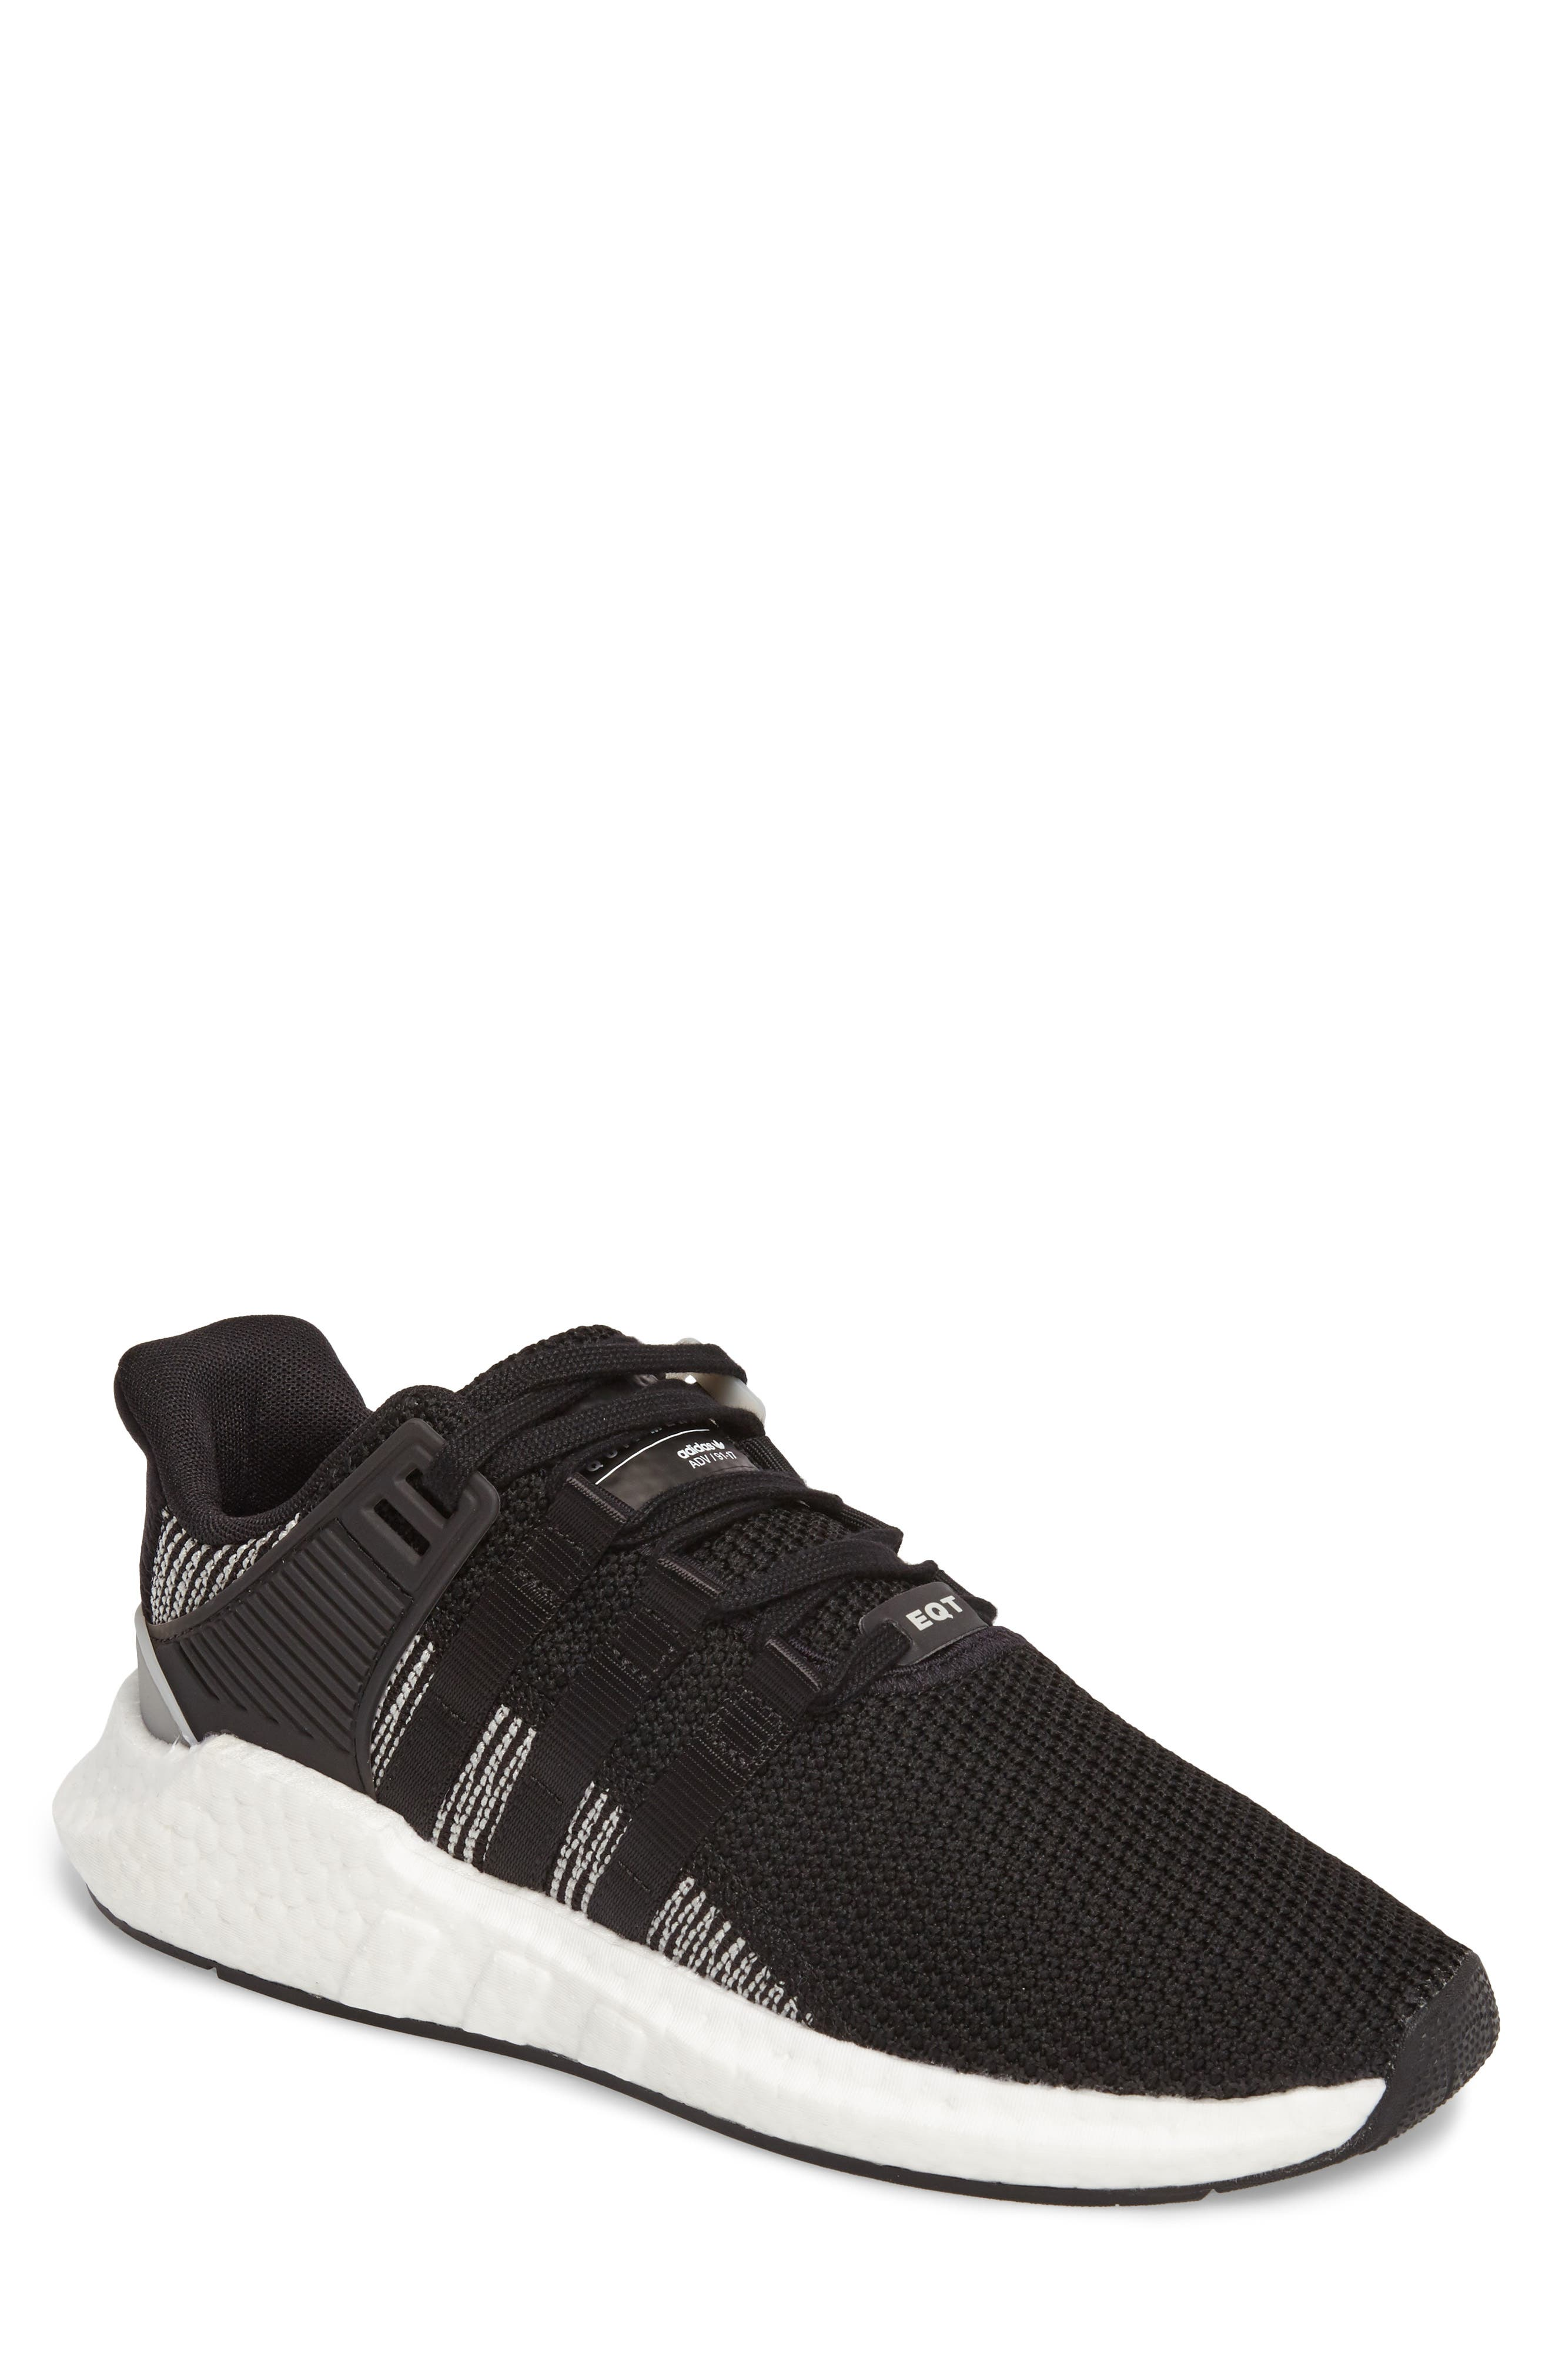 EQT Support 93/17 Sneaker,                         Main,                         color, Core Black/ Core Black/ White